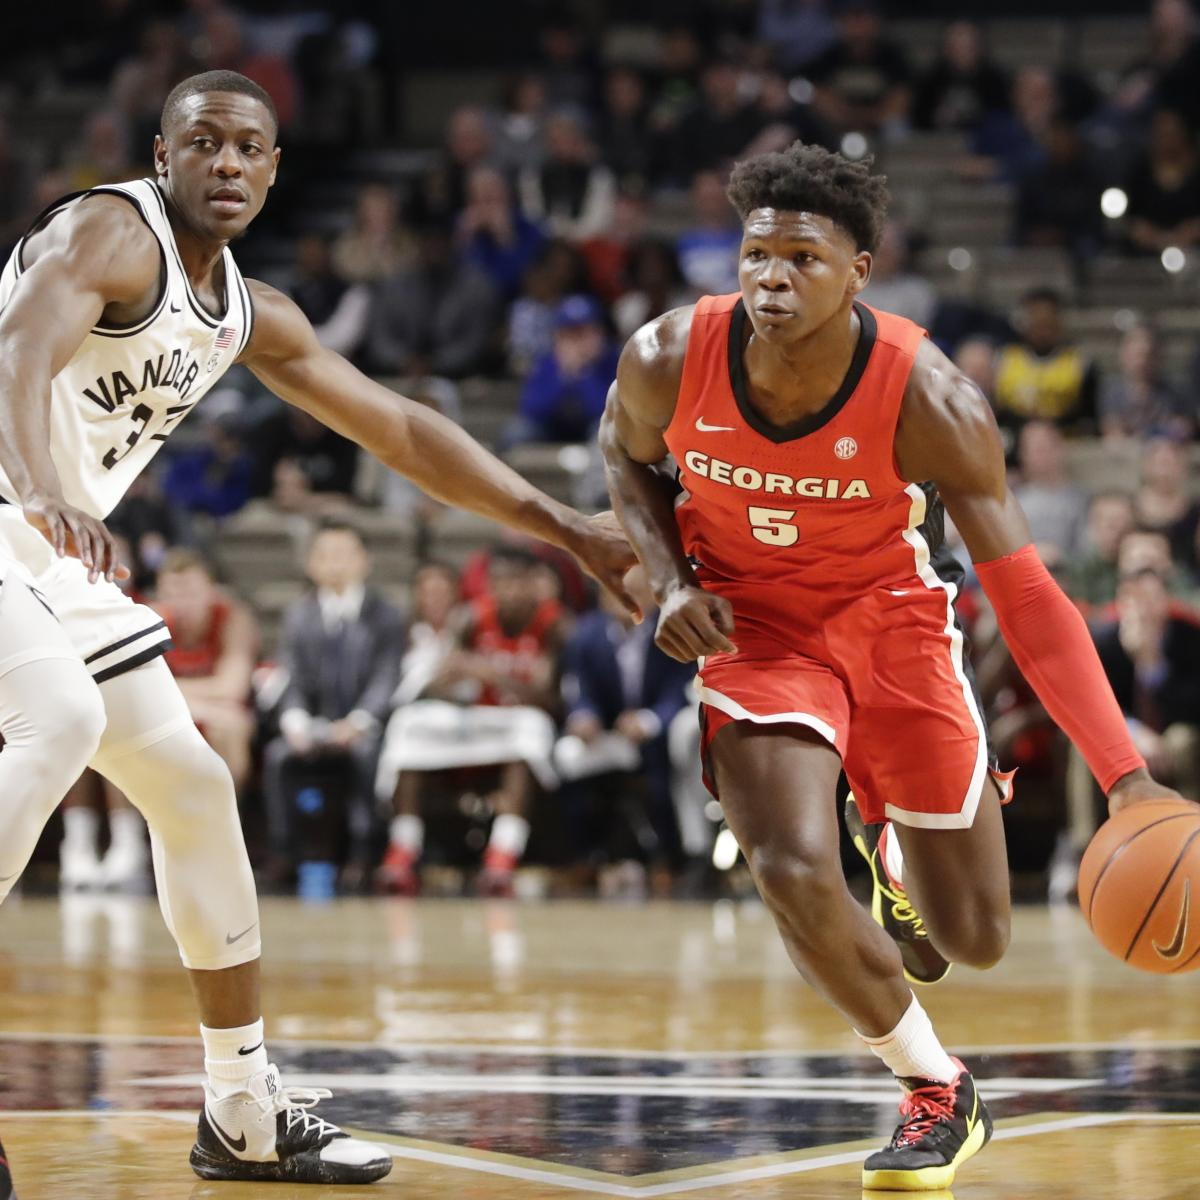 NBA Draft 2020: 1st-Round Mock and More on James Wiseman, Top Prospects